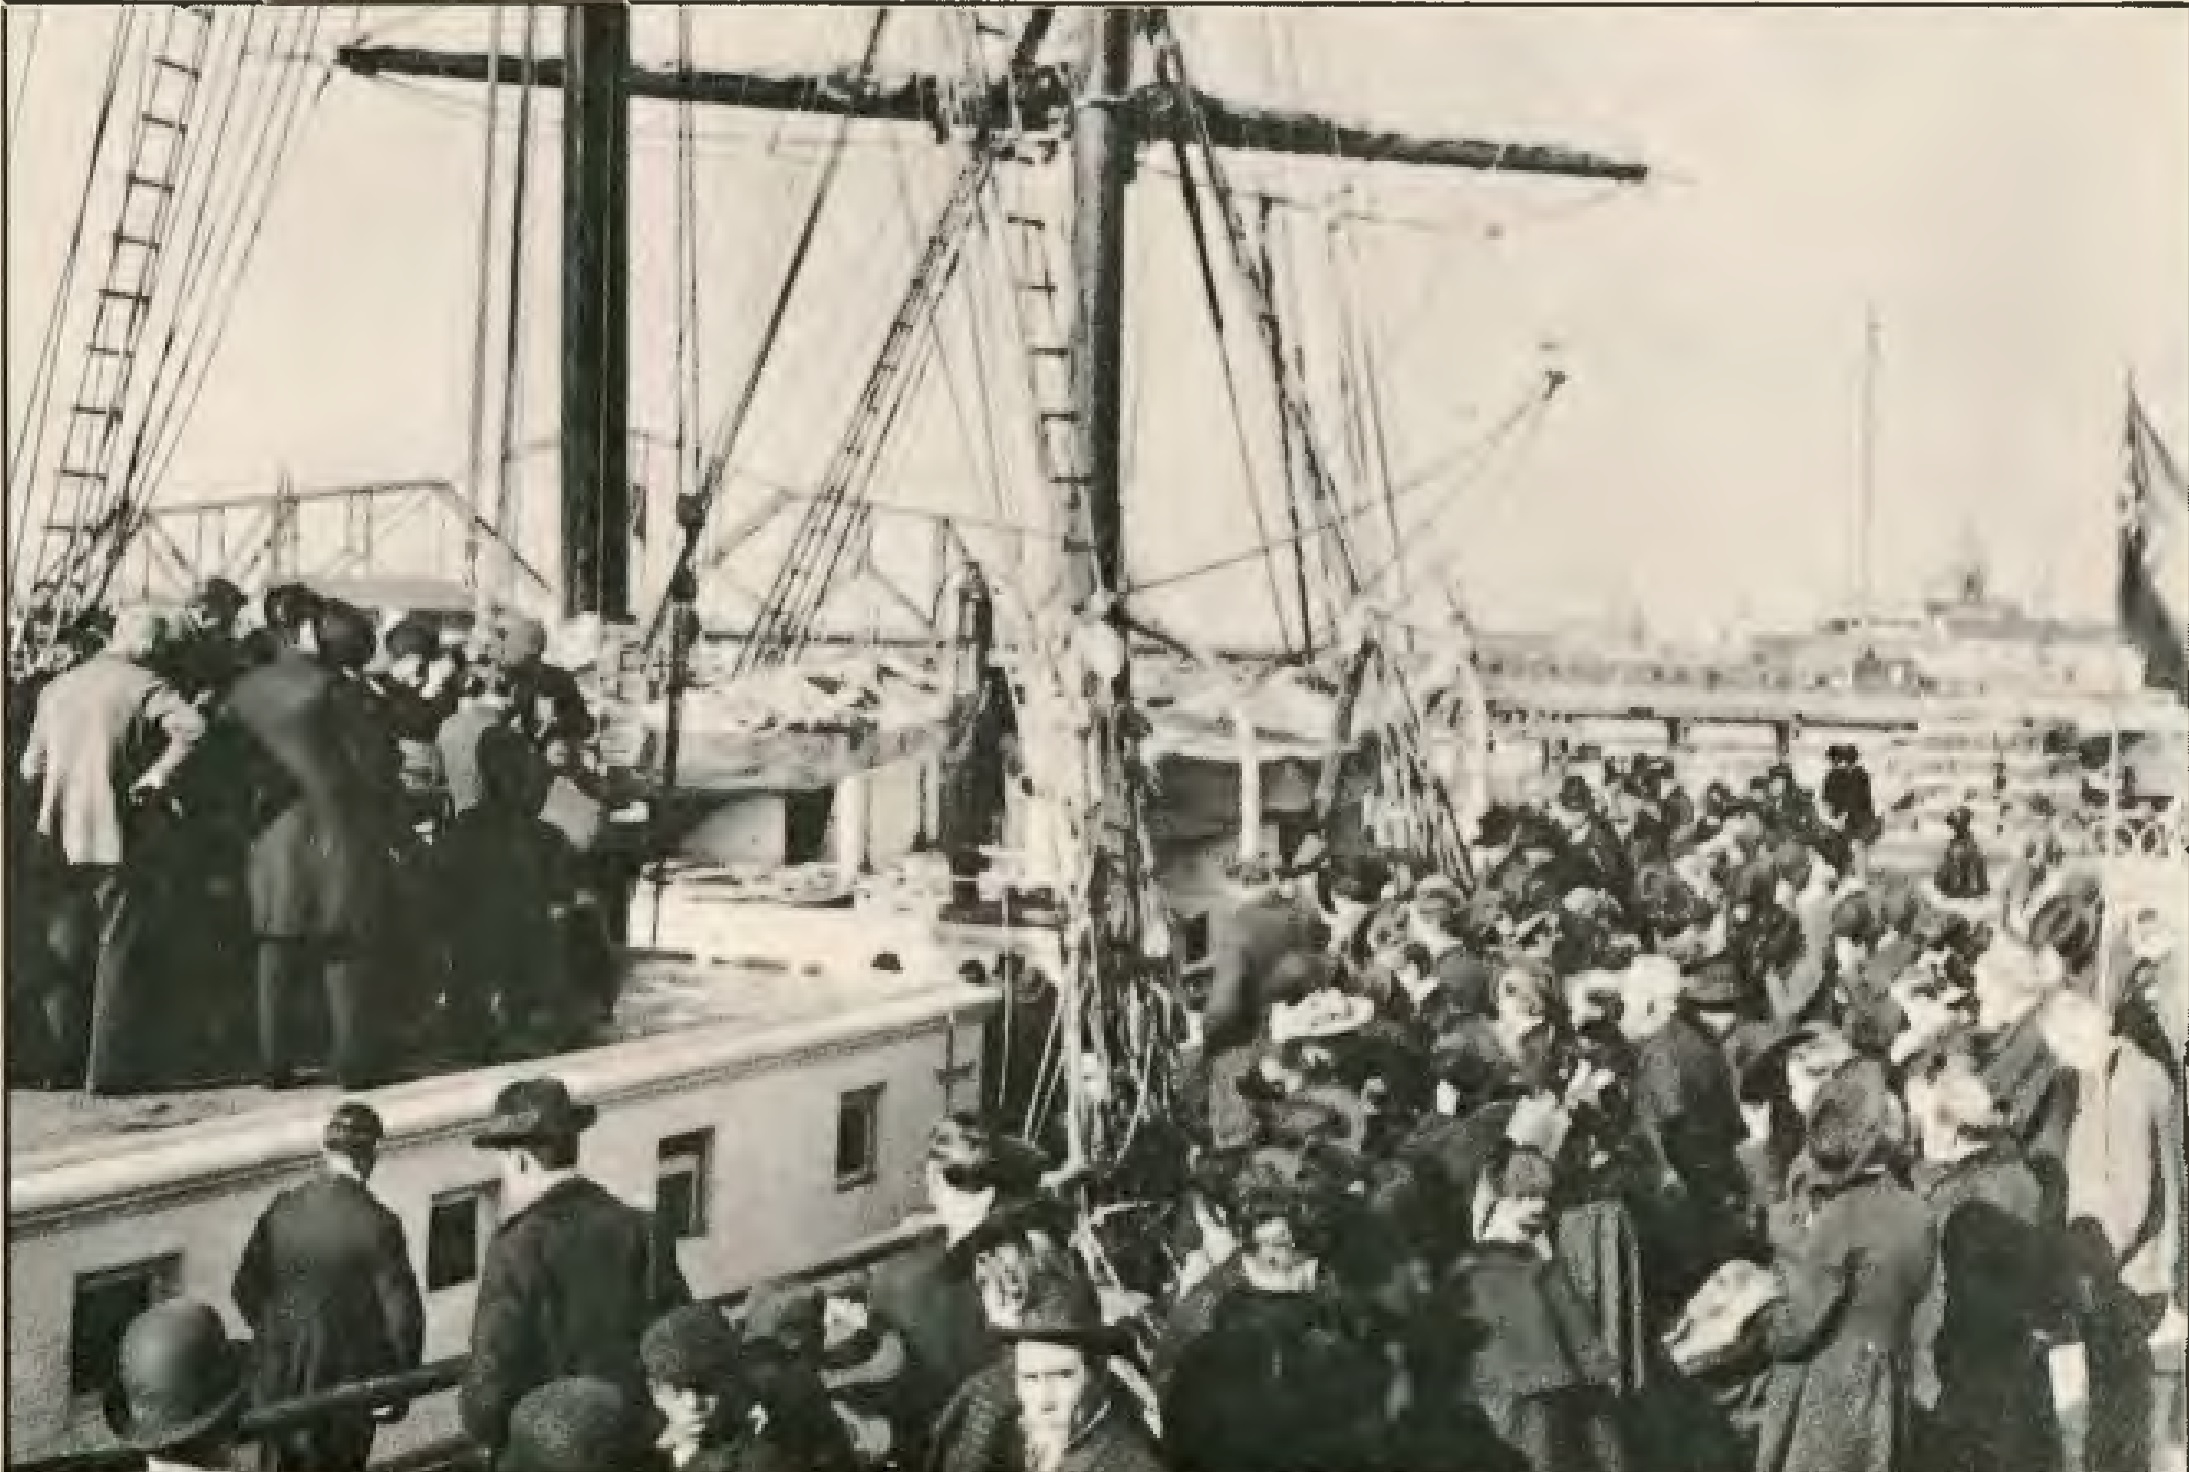 Approximately 1,500 people attended the dedication ceremonies for the schooner Pitcairn in Oakland, California, on the afternoon of September 25, 1890, which included a prayer by R.A. Underwood.